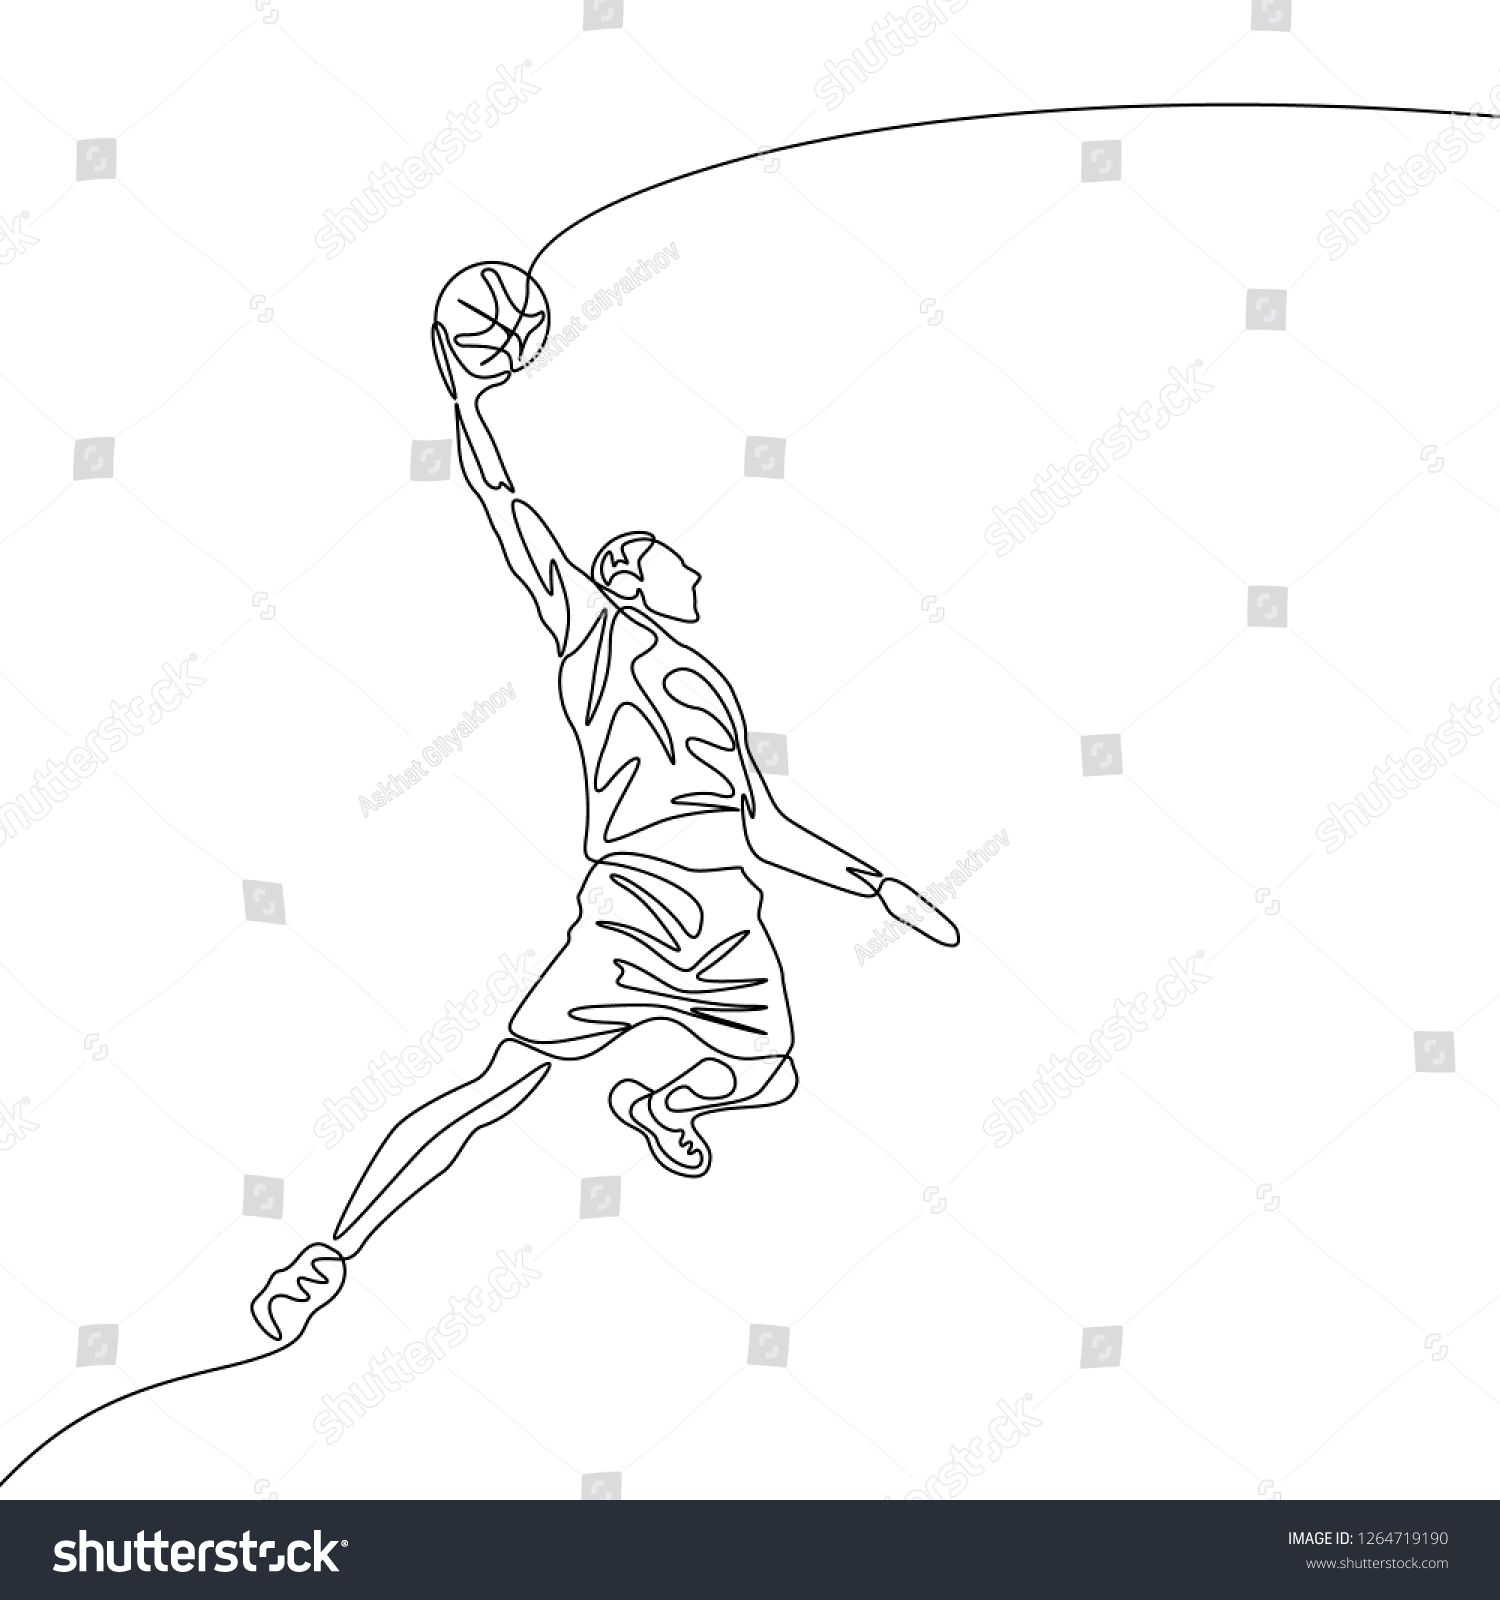 Continuous One Line Drawing Basketball Player Jumps Doing Slam Dunk Sport Theme Line Drawing Line Art Drawings Hipster Drawings